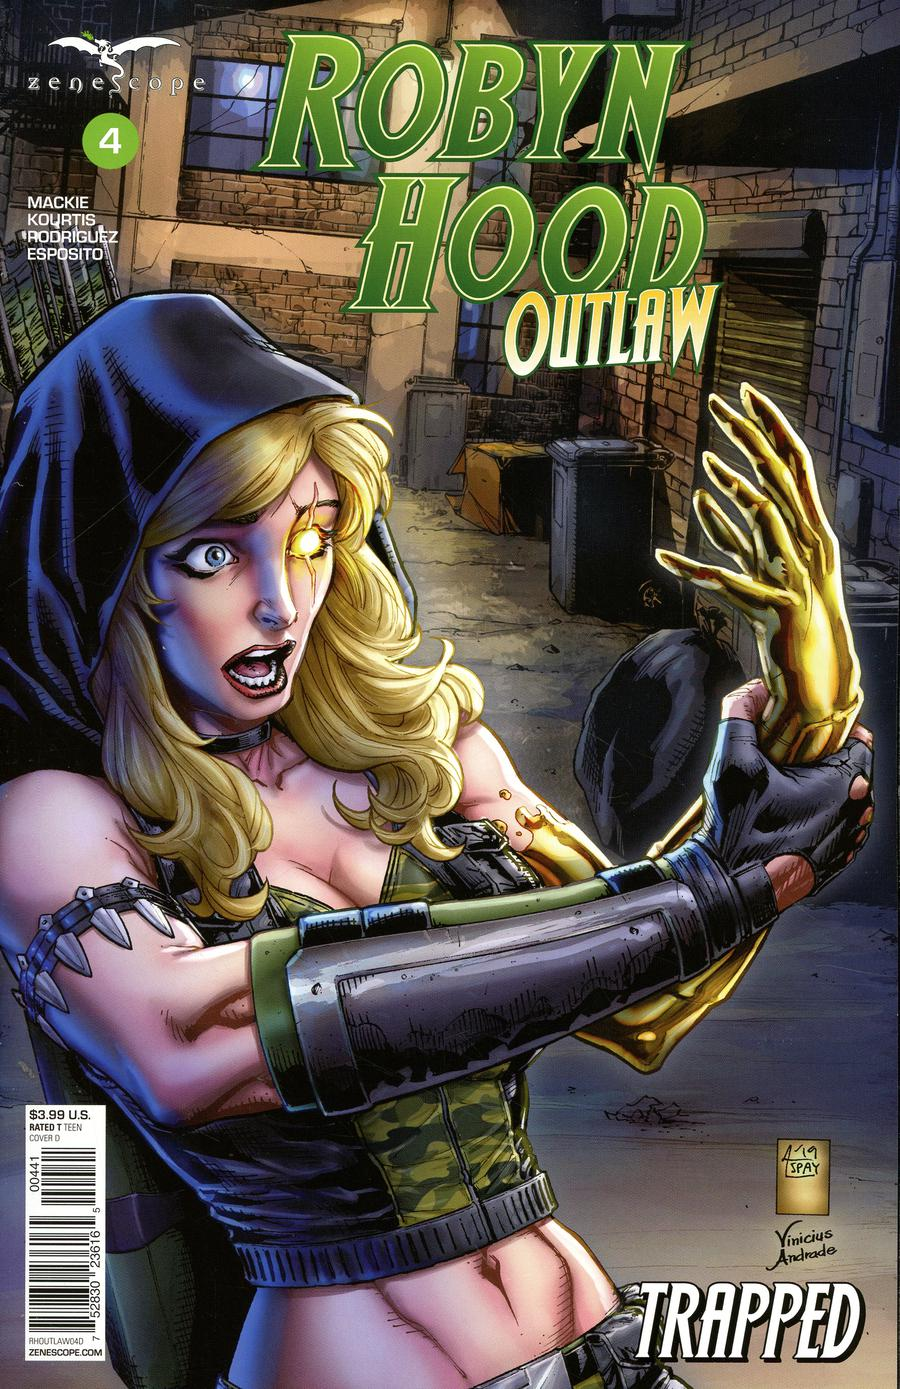 Grimm Fairy Tales Presents Robyn Hood Outlaw #4 Cover D Anthony Spay